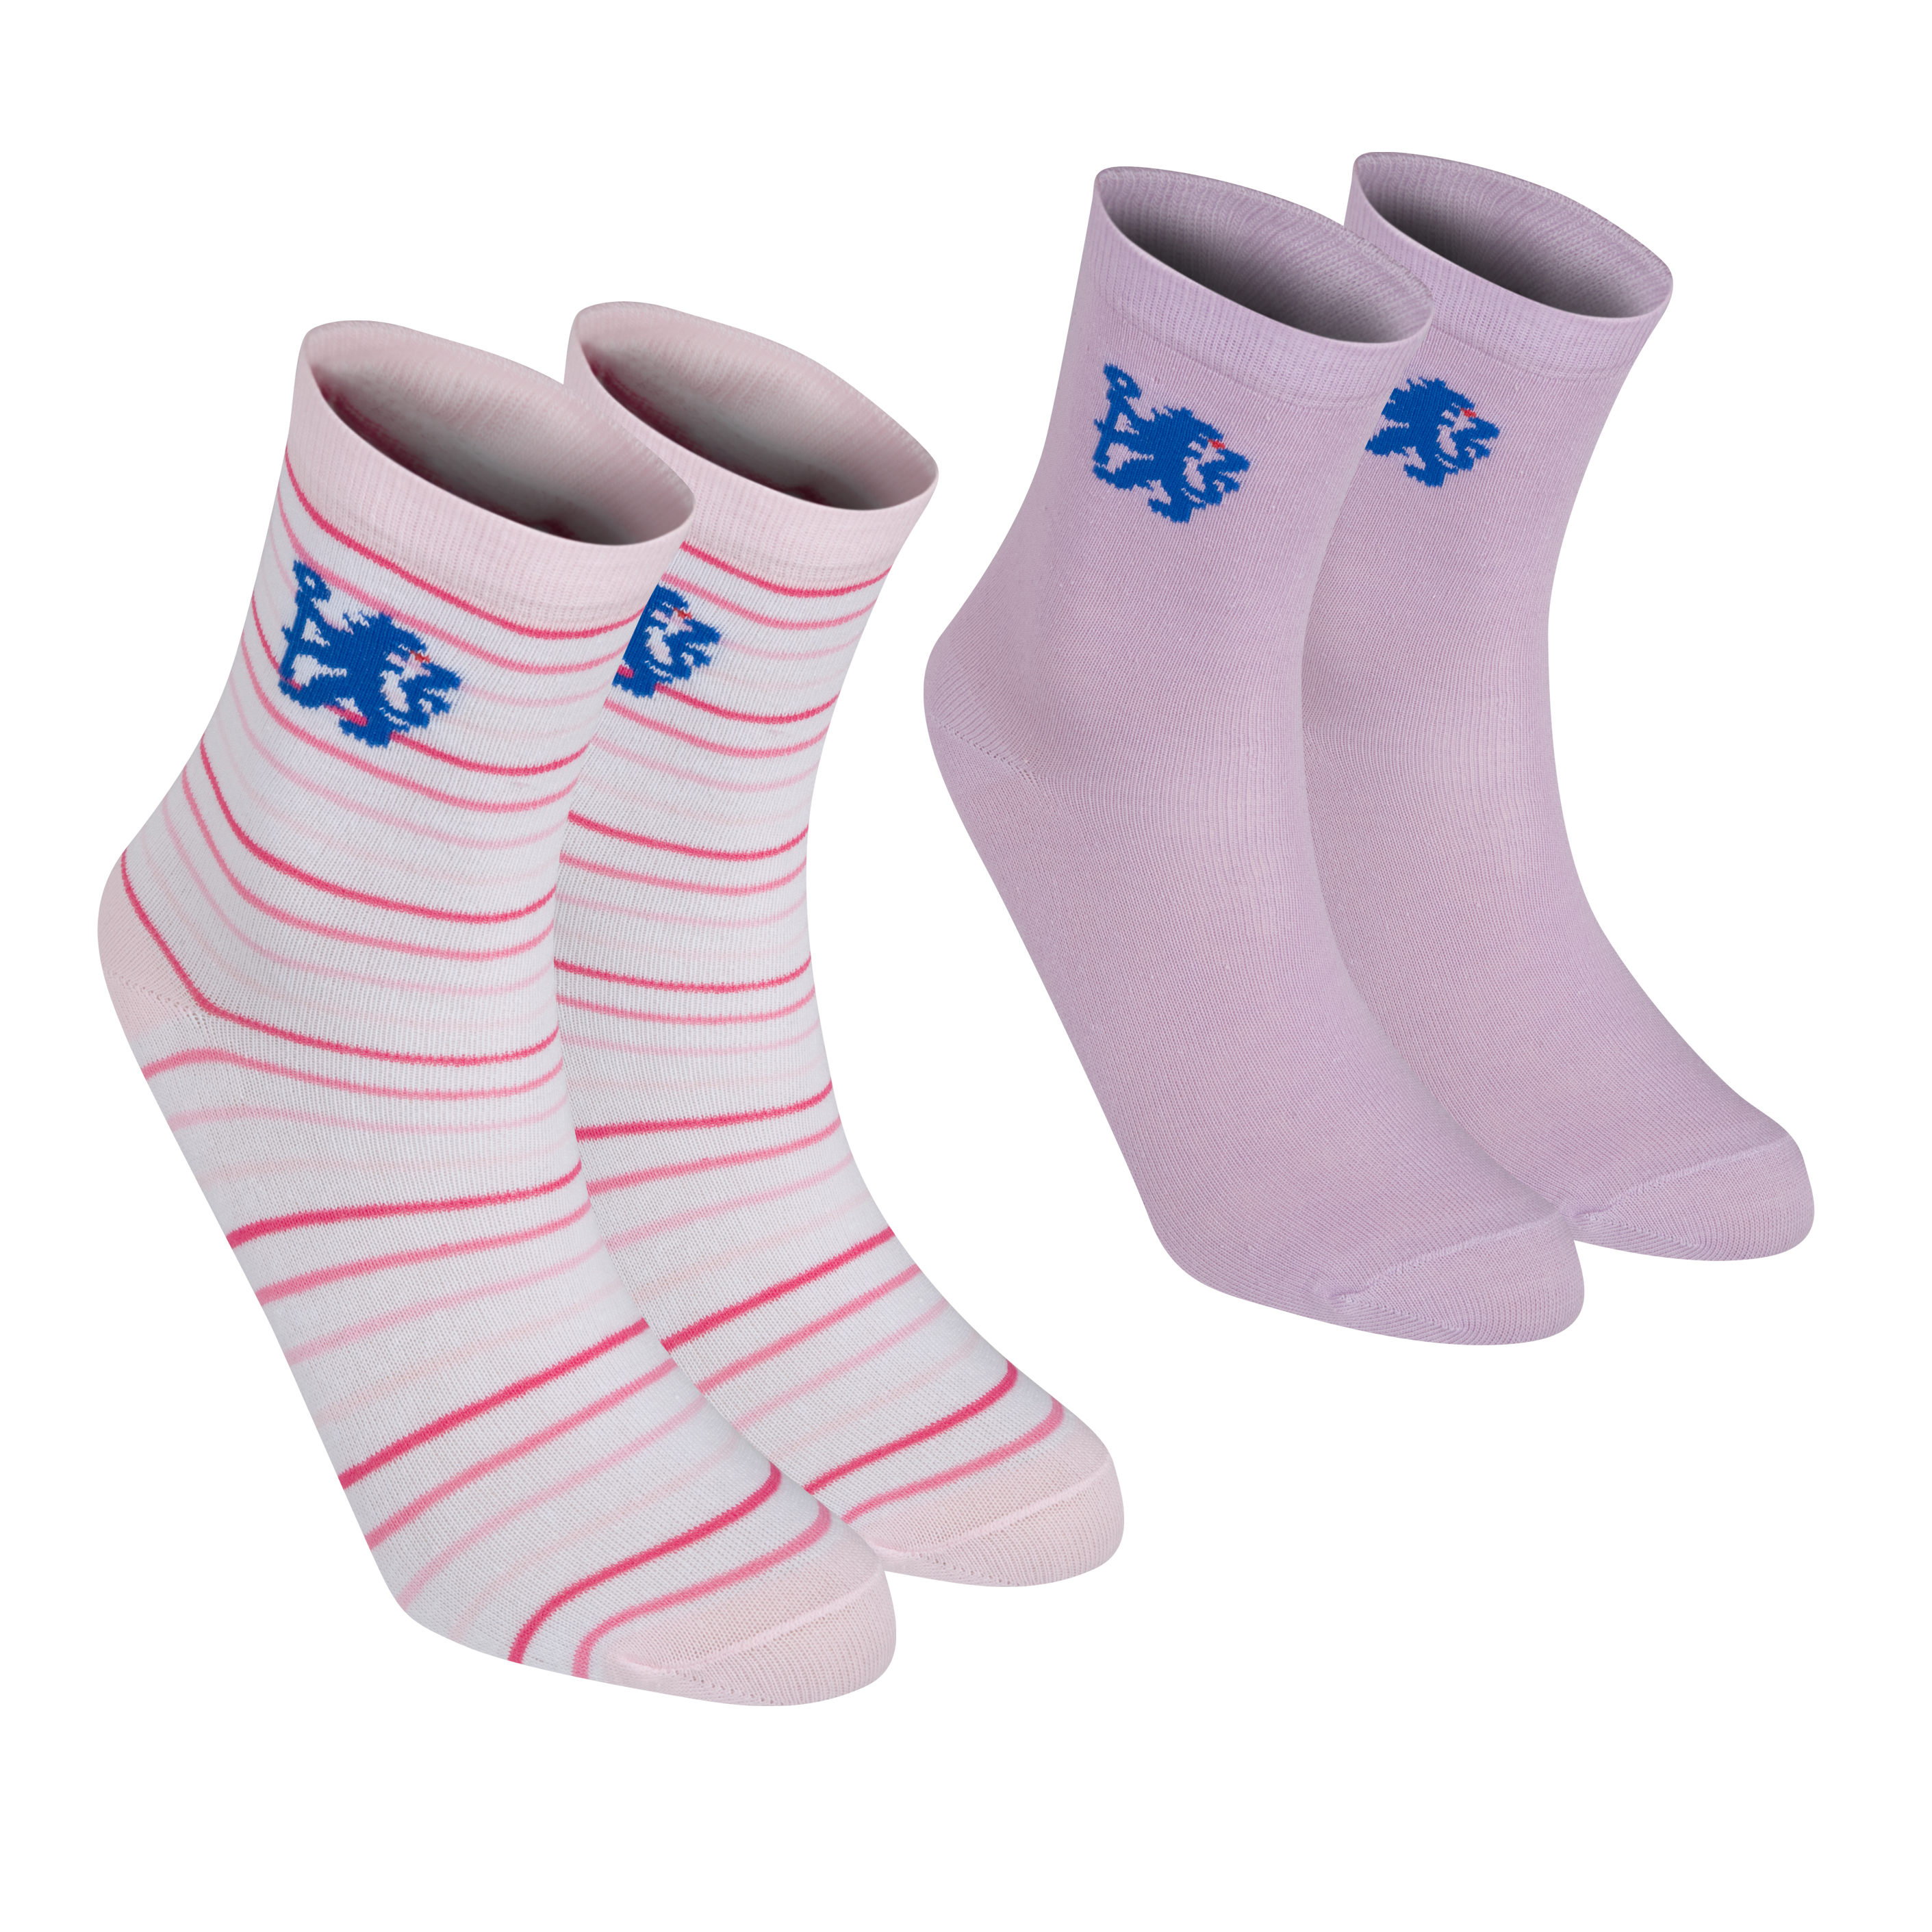 Chelsea 2 Pack Socks - Girls - Pink